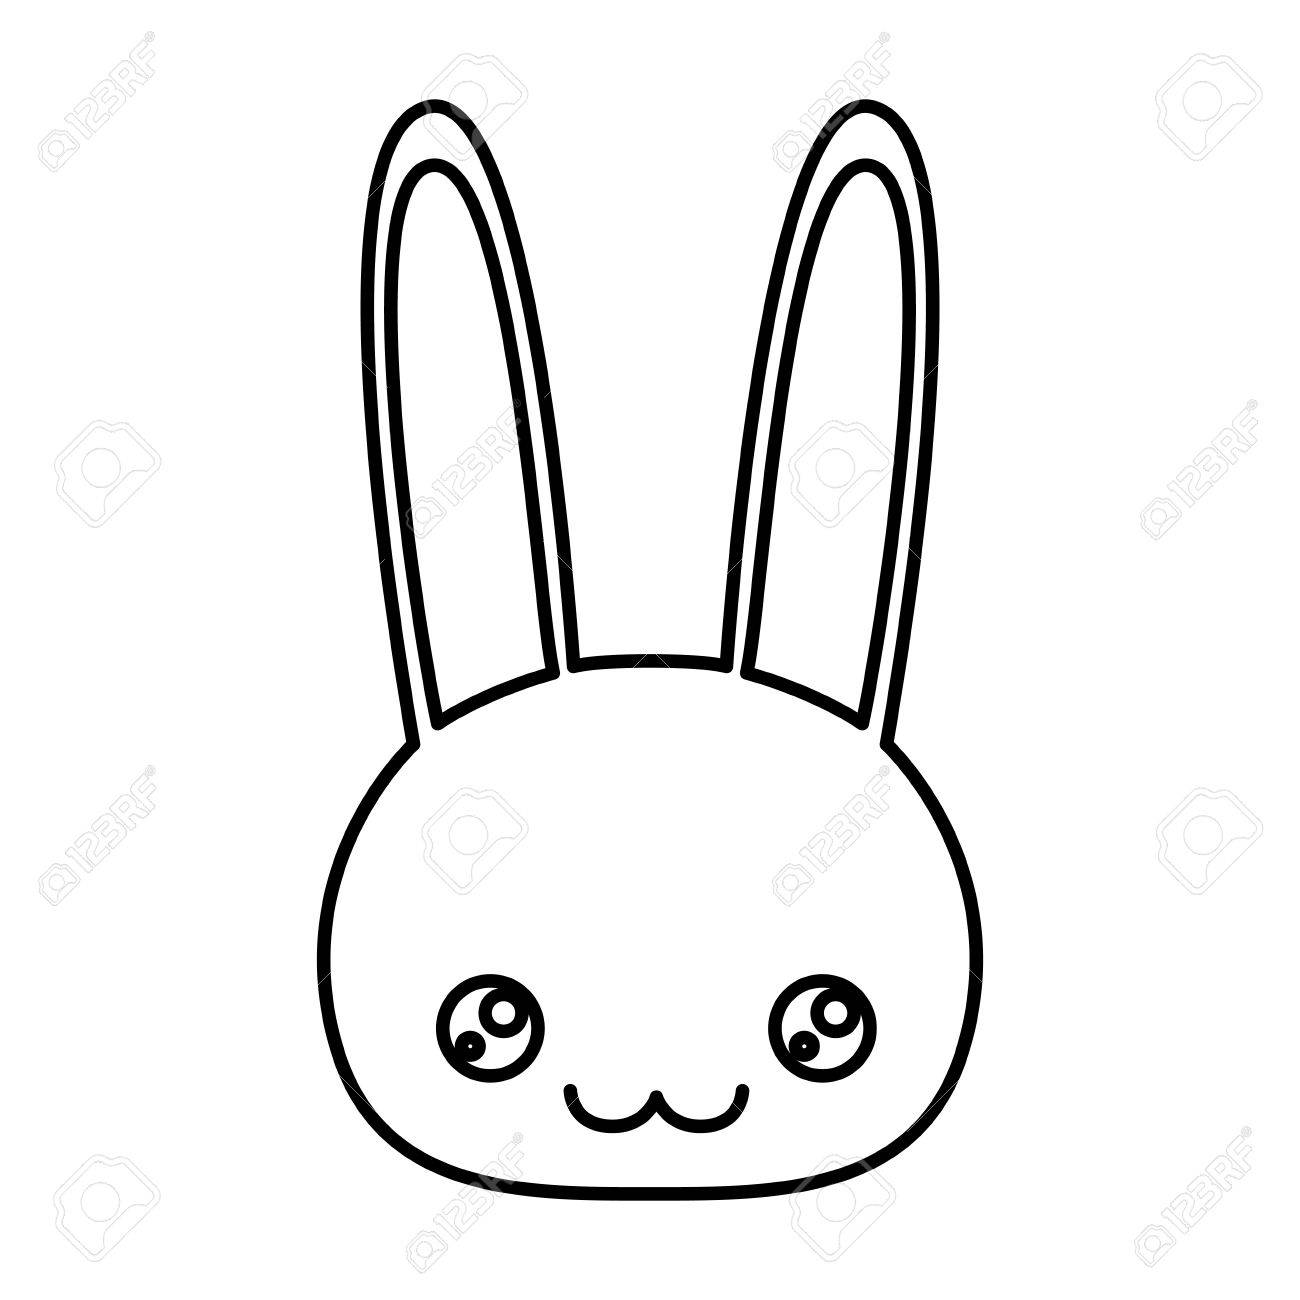 1300x1300 Sketch Silhouette Of Caricature Face Rabbit Cute Animal Happiness